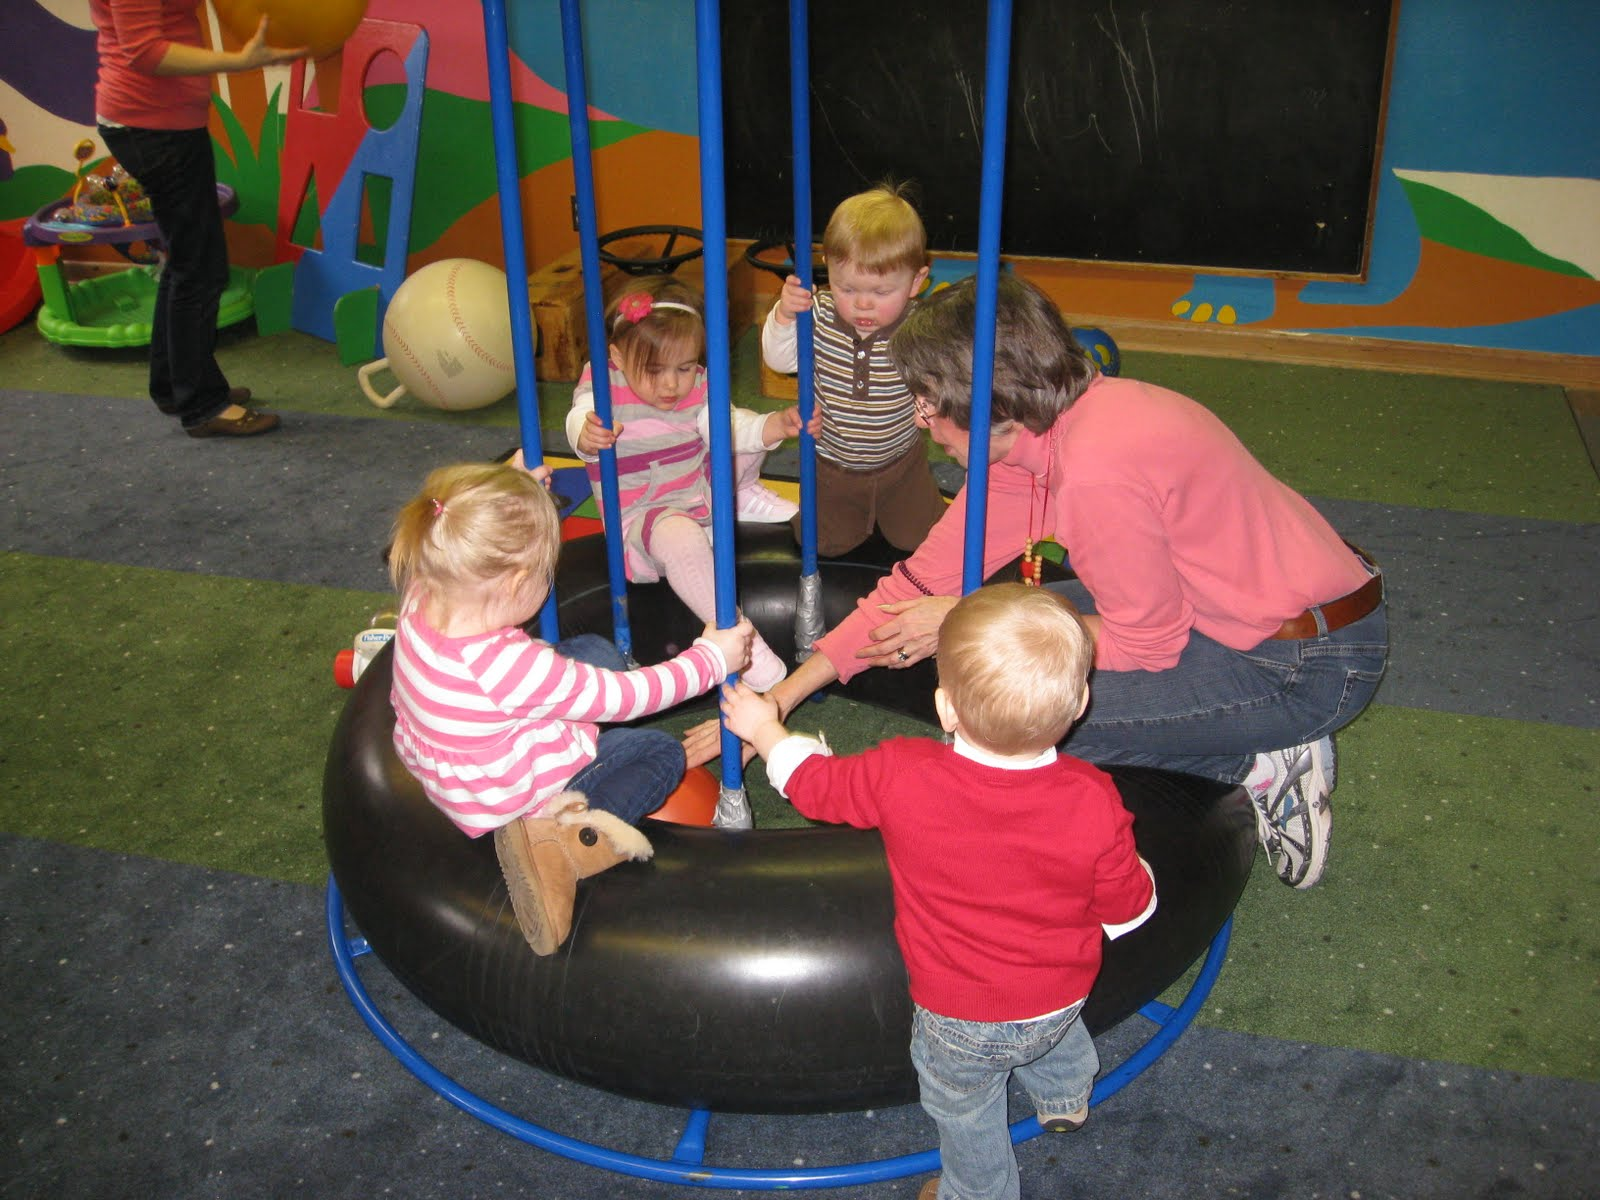 Children playing on a bouncy tire